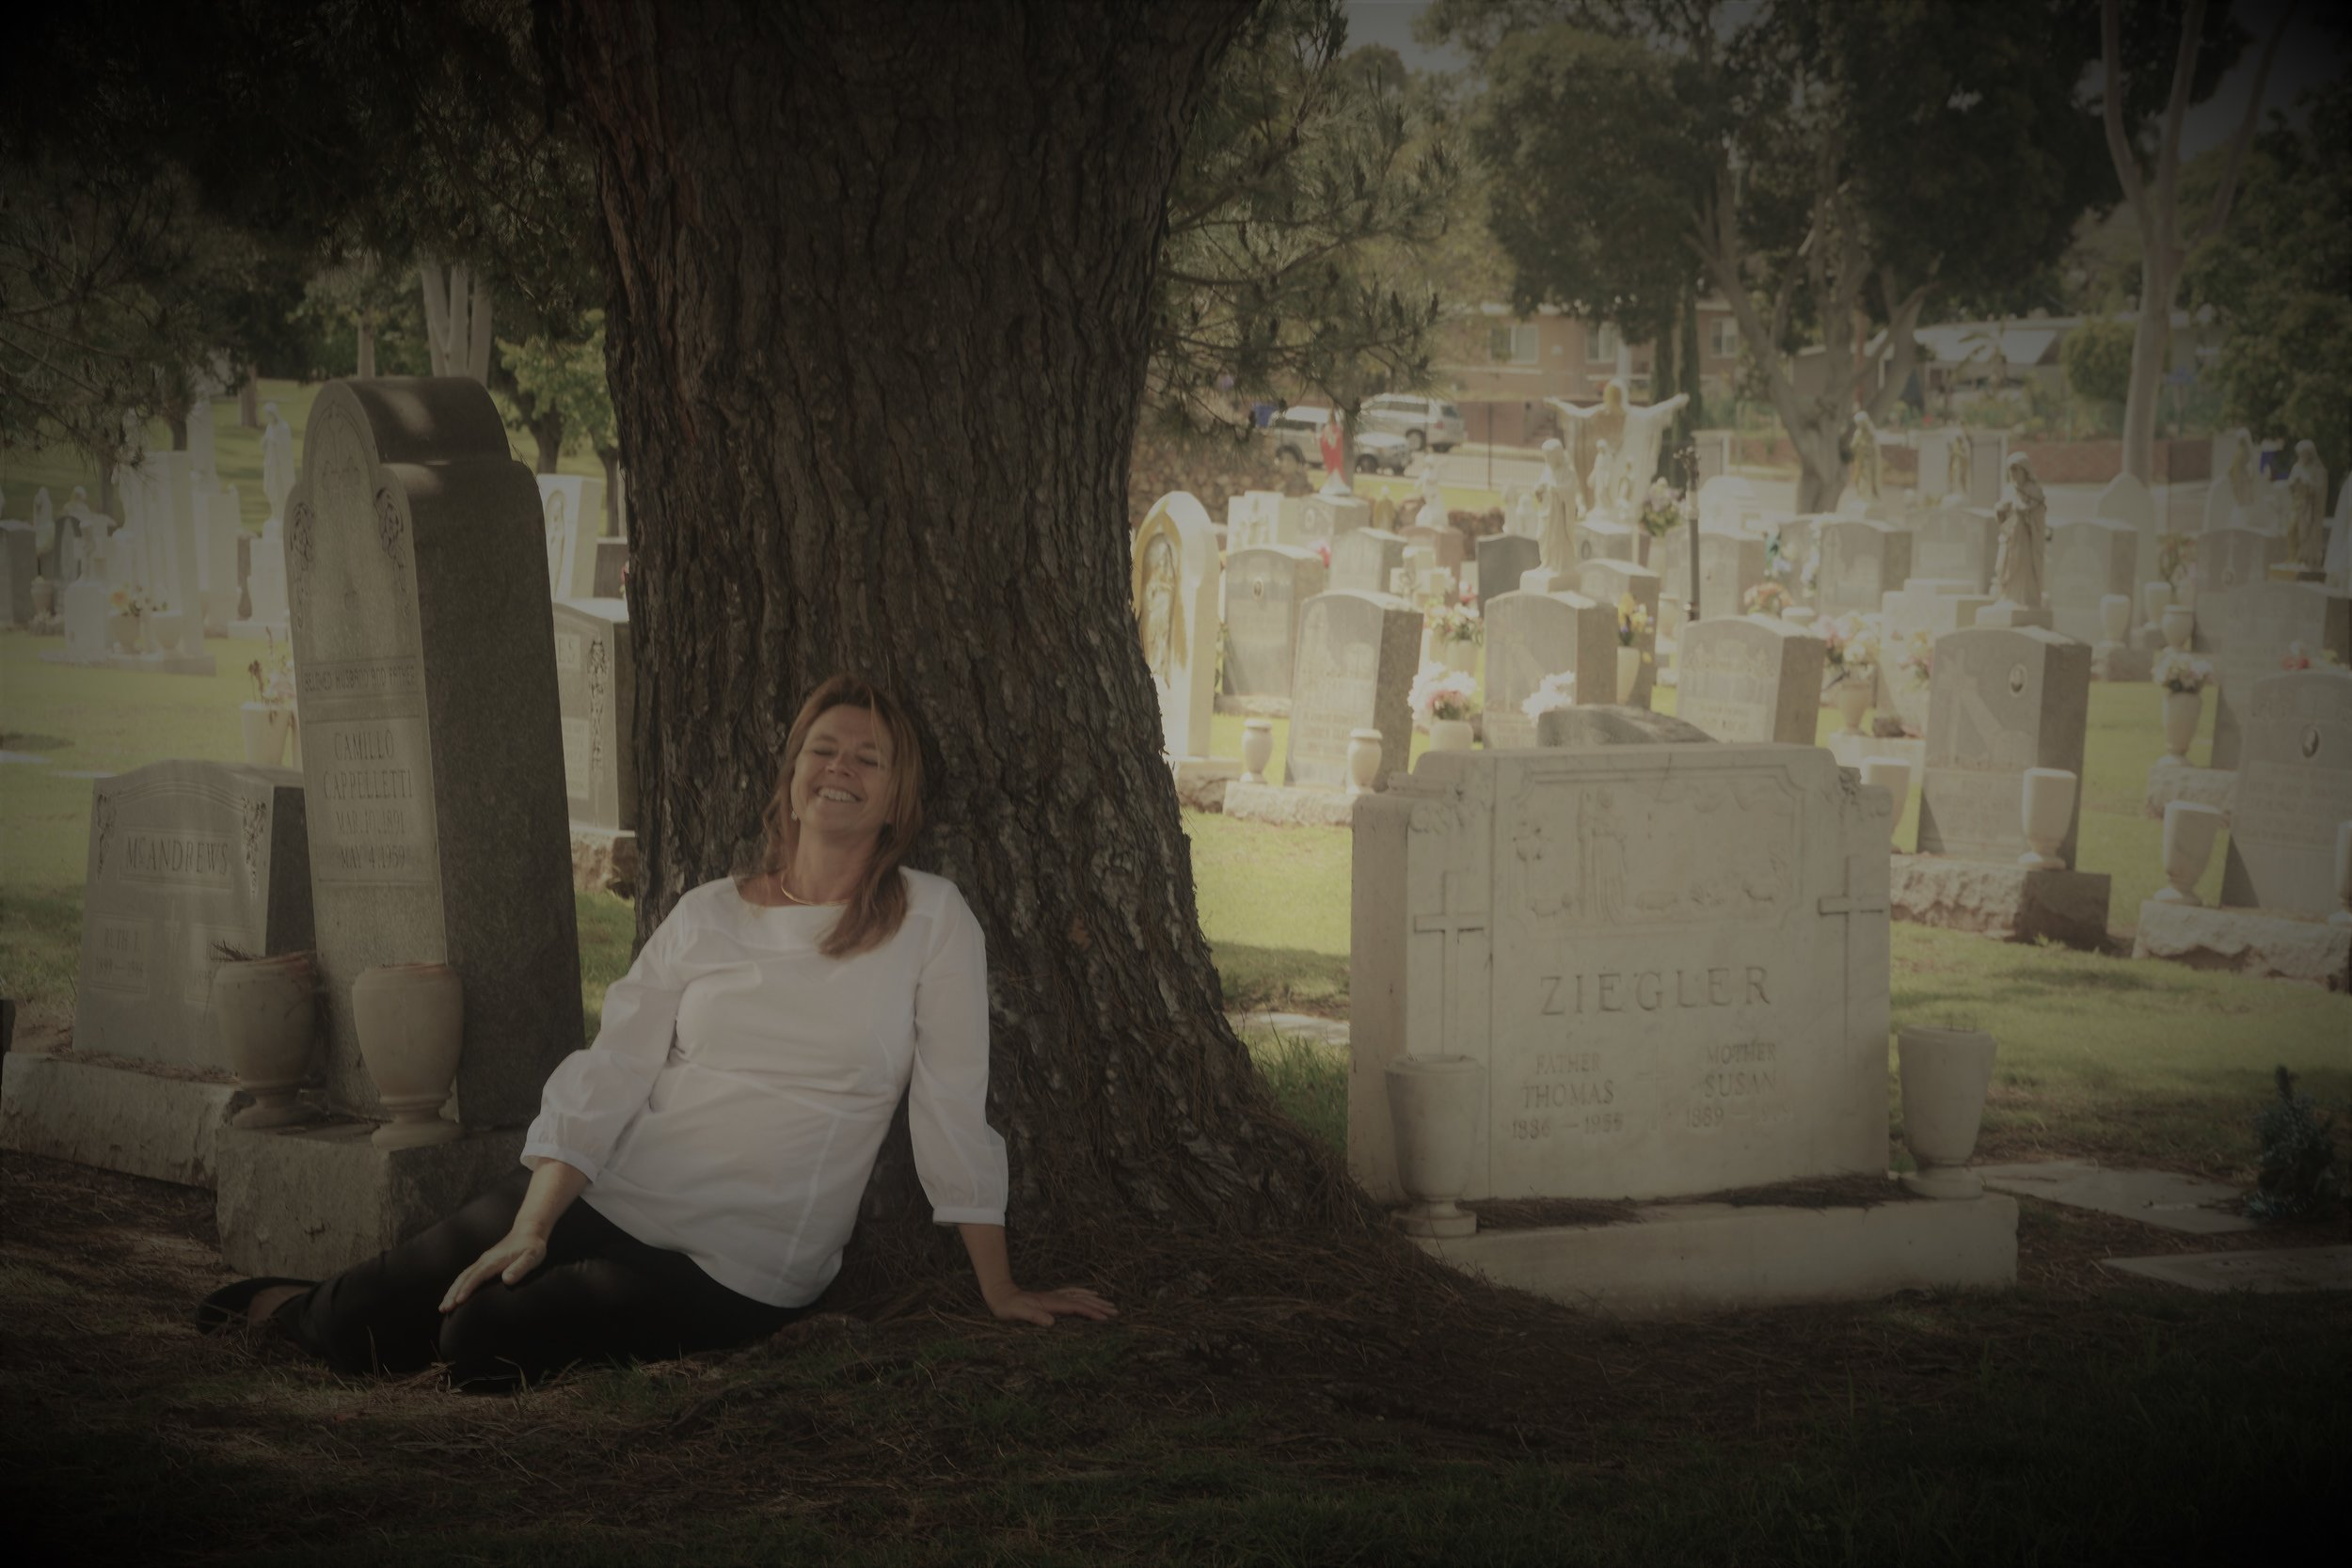 I read the gravestones and gather stories. -